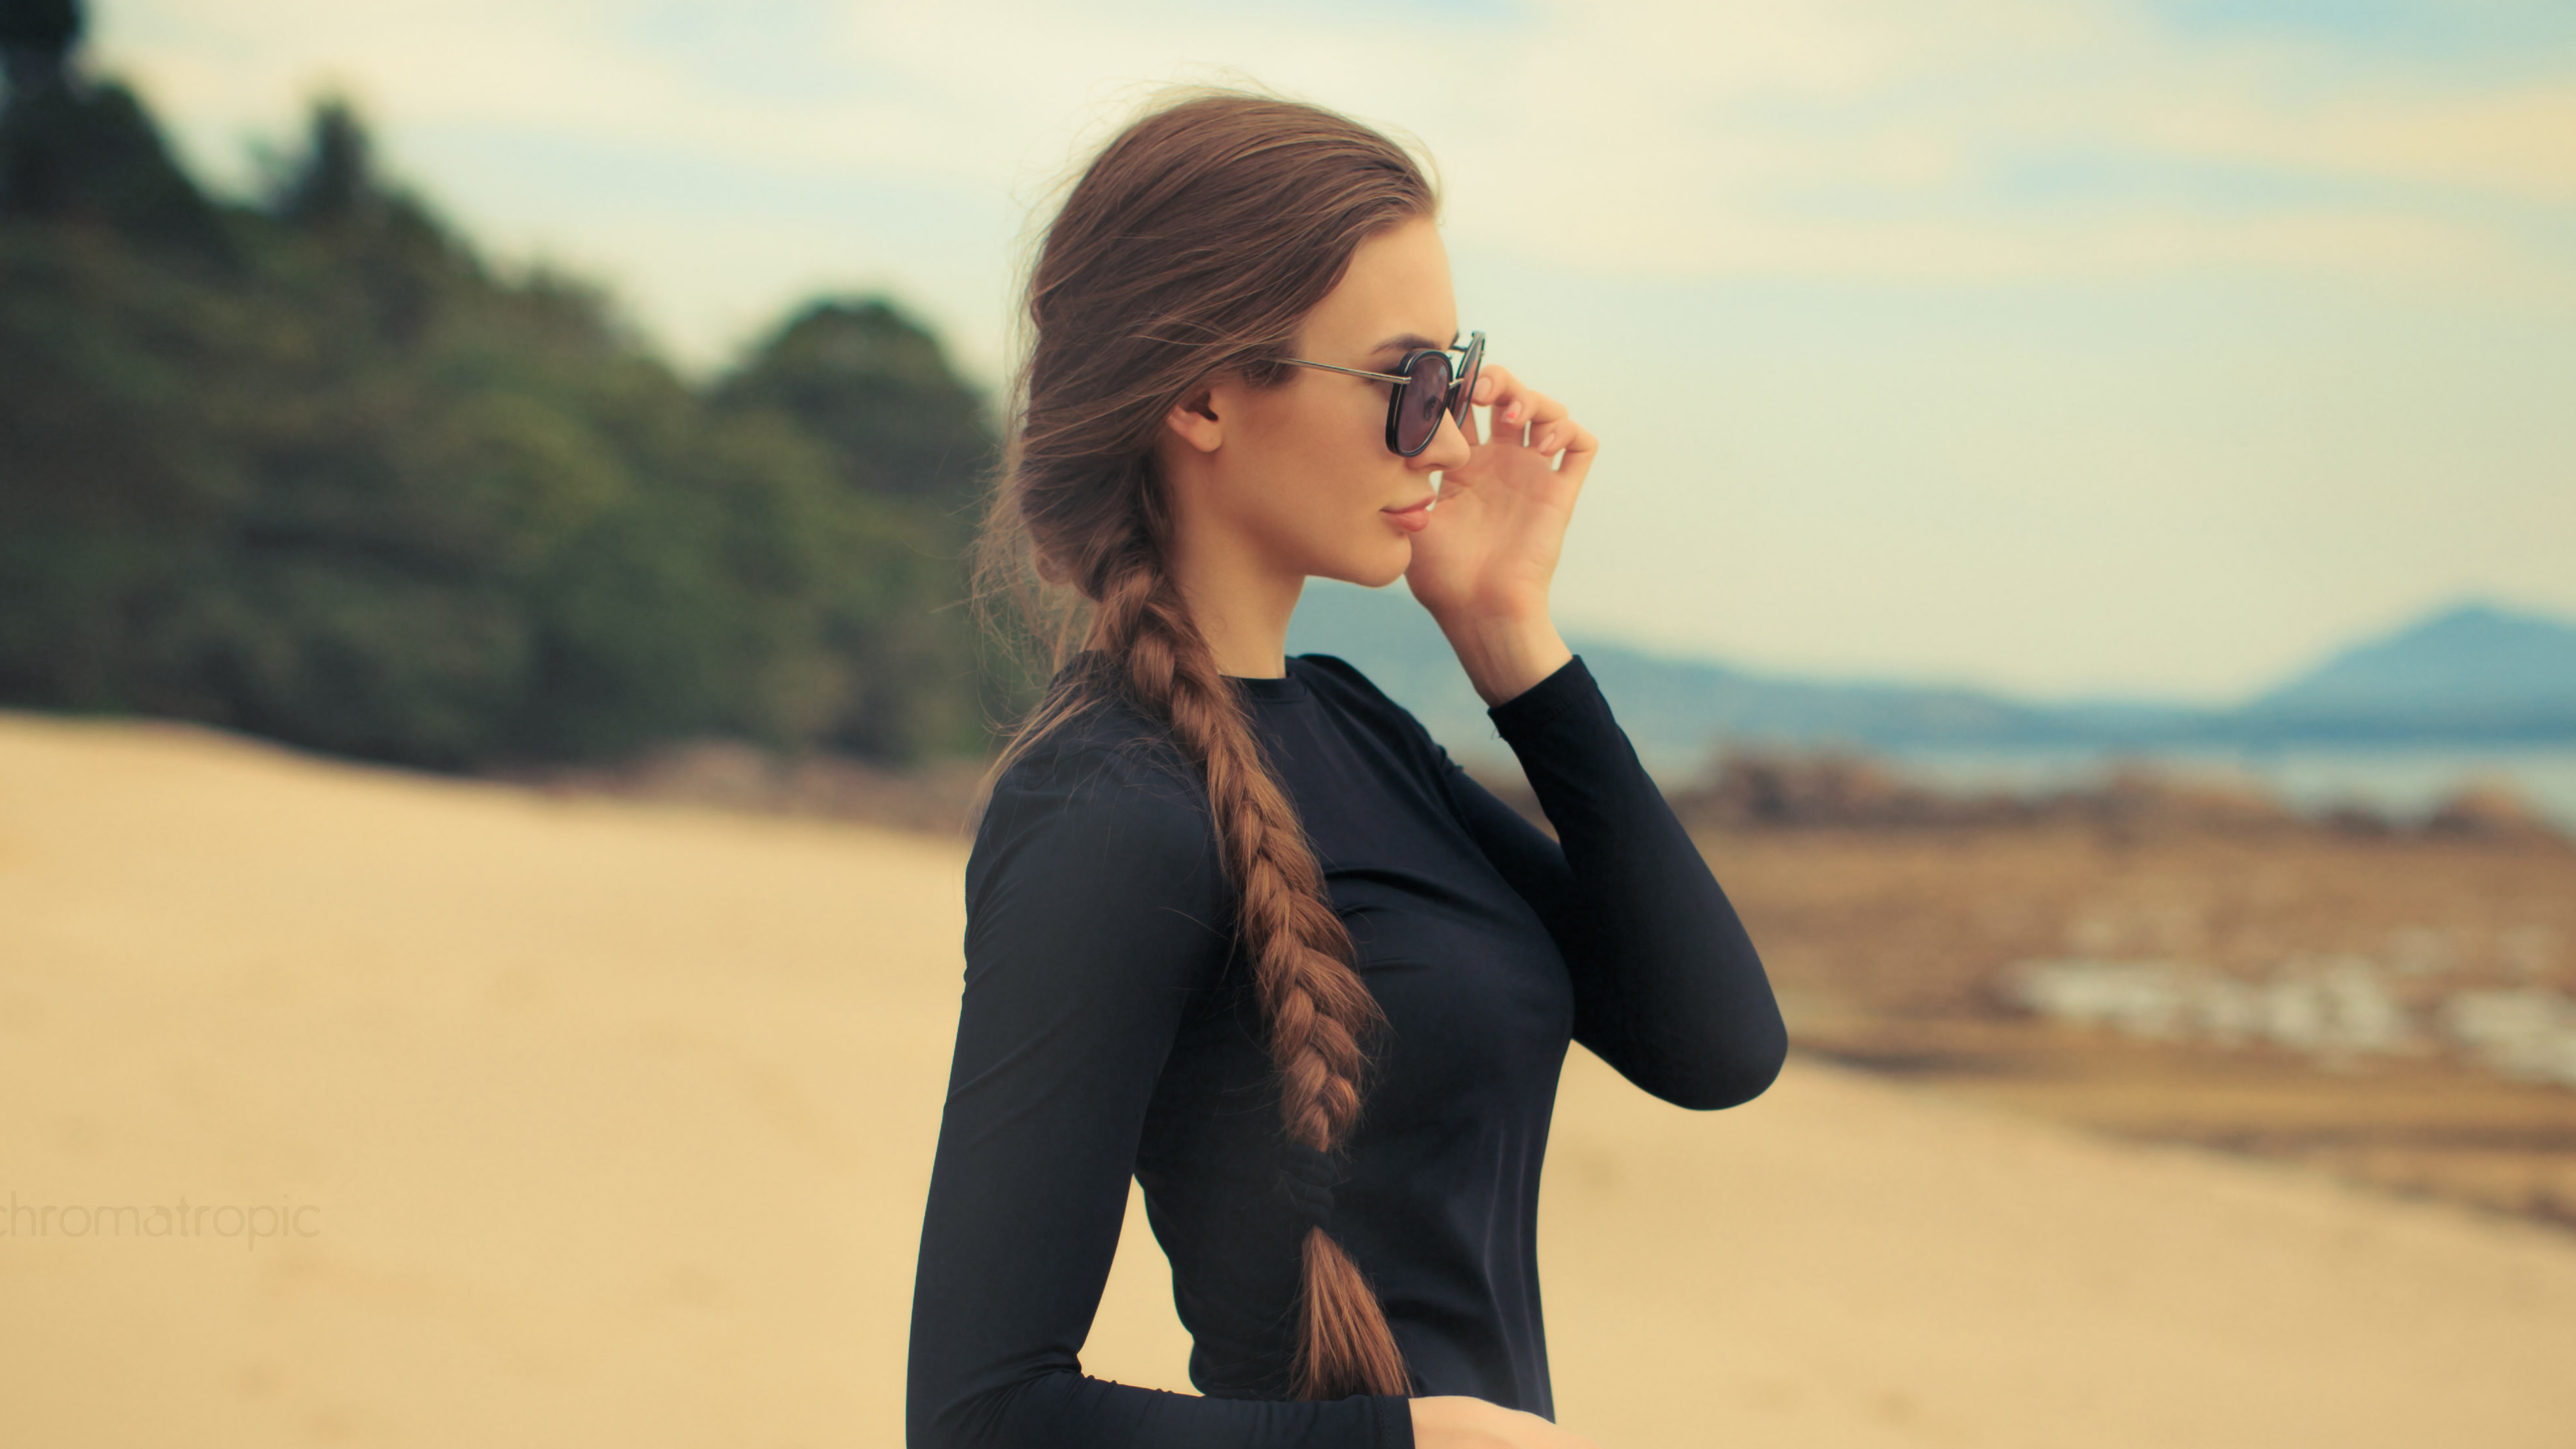 women with shades 1575664977 - Women With Shades -